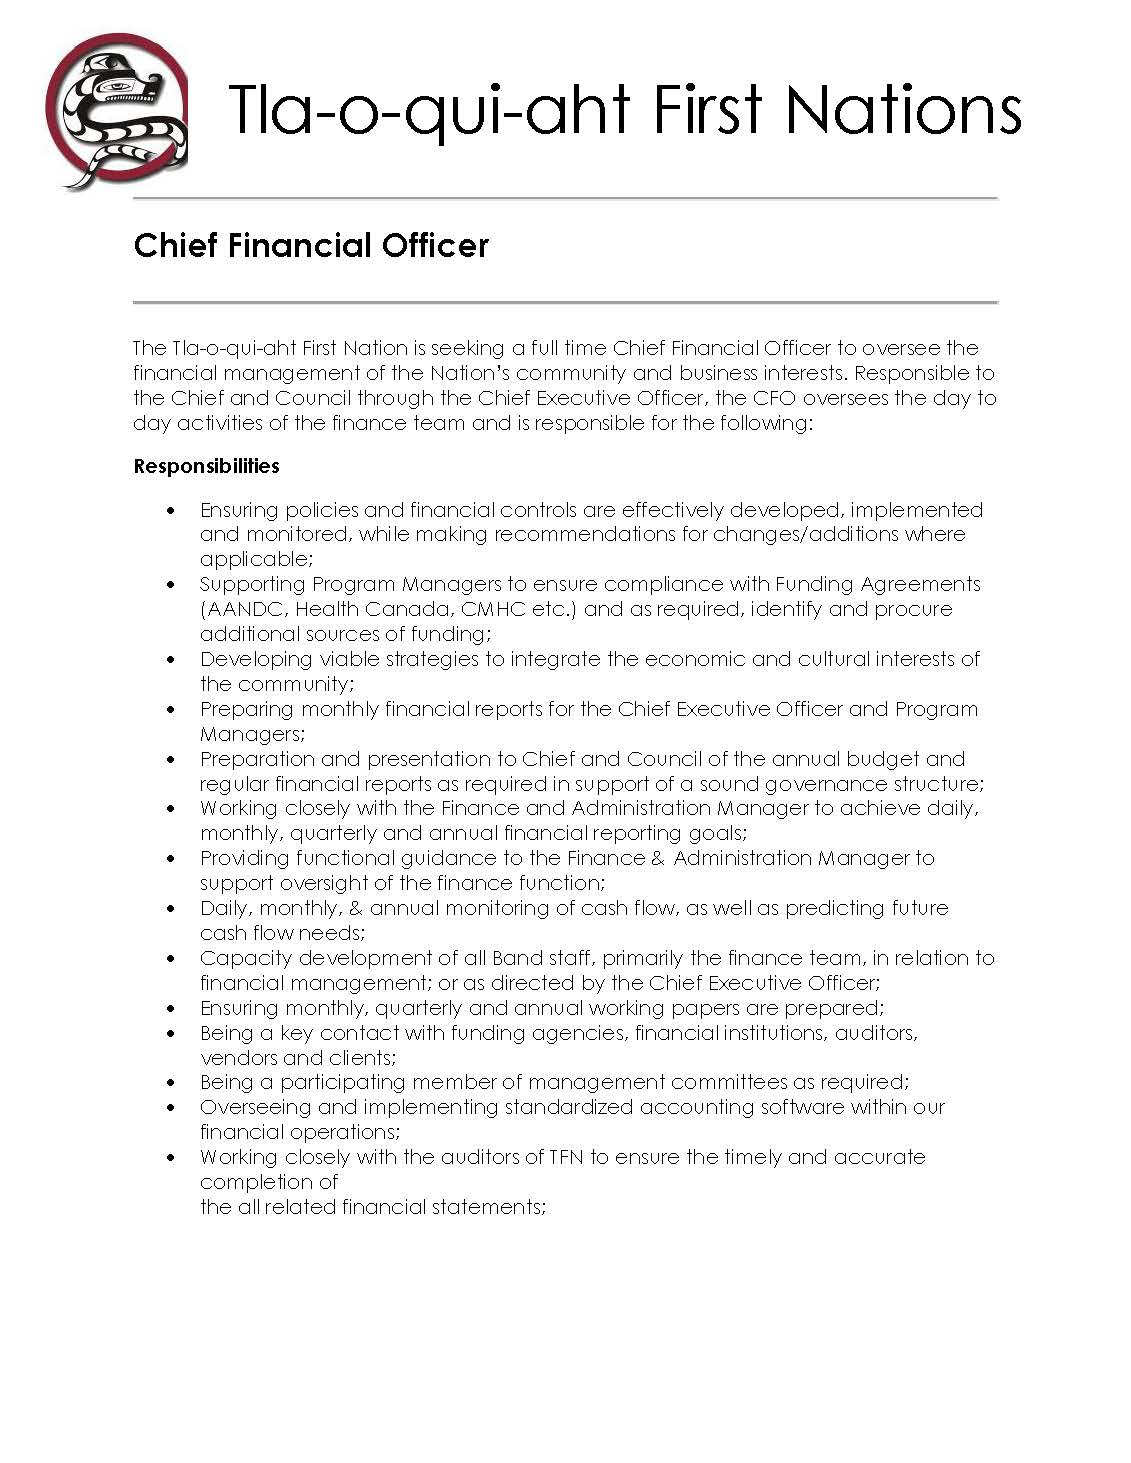 Chief Financial Officer   Job Posting